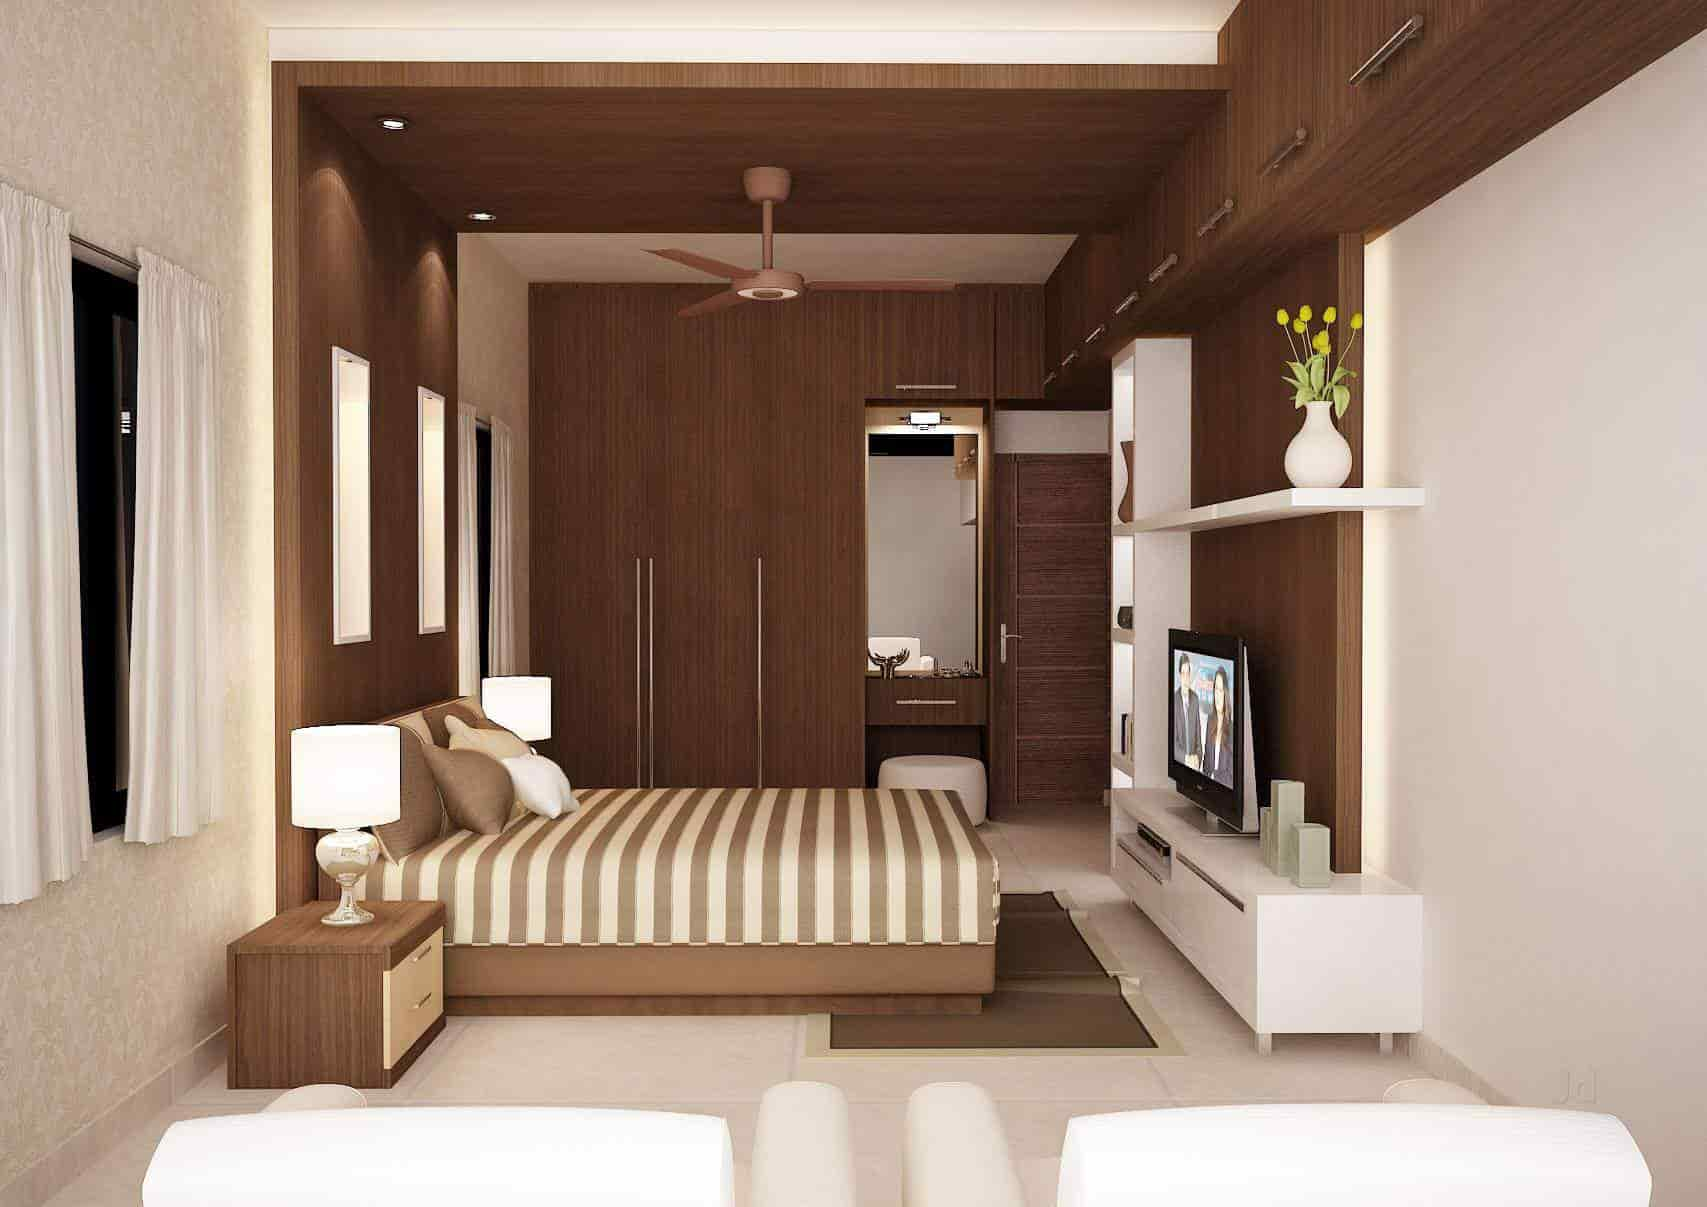 Koncept Archidesign Consultants Bhubaneswar Architects in